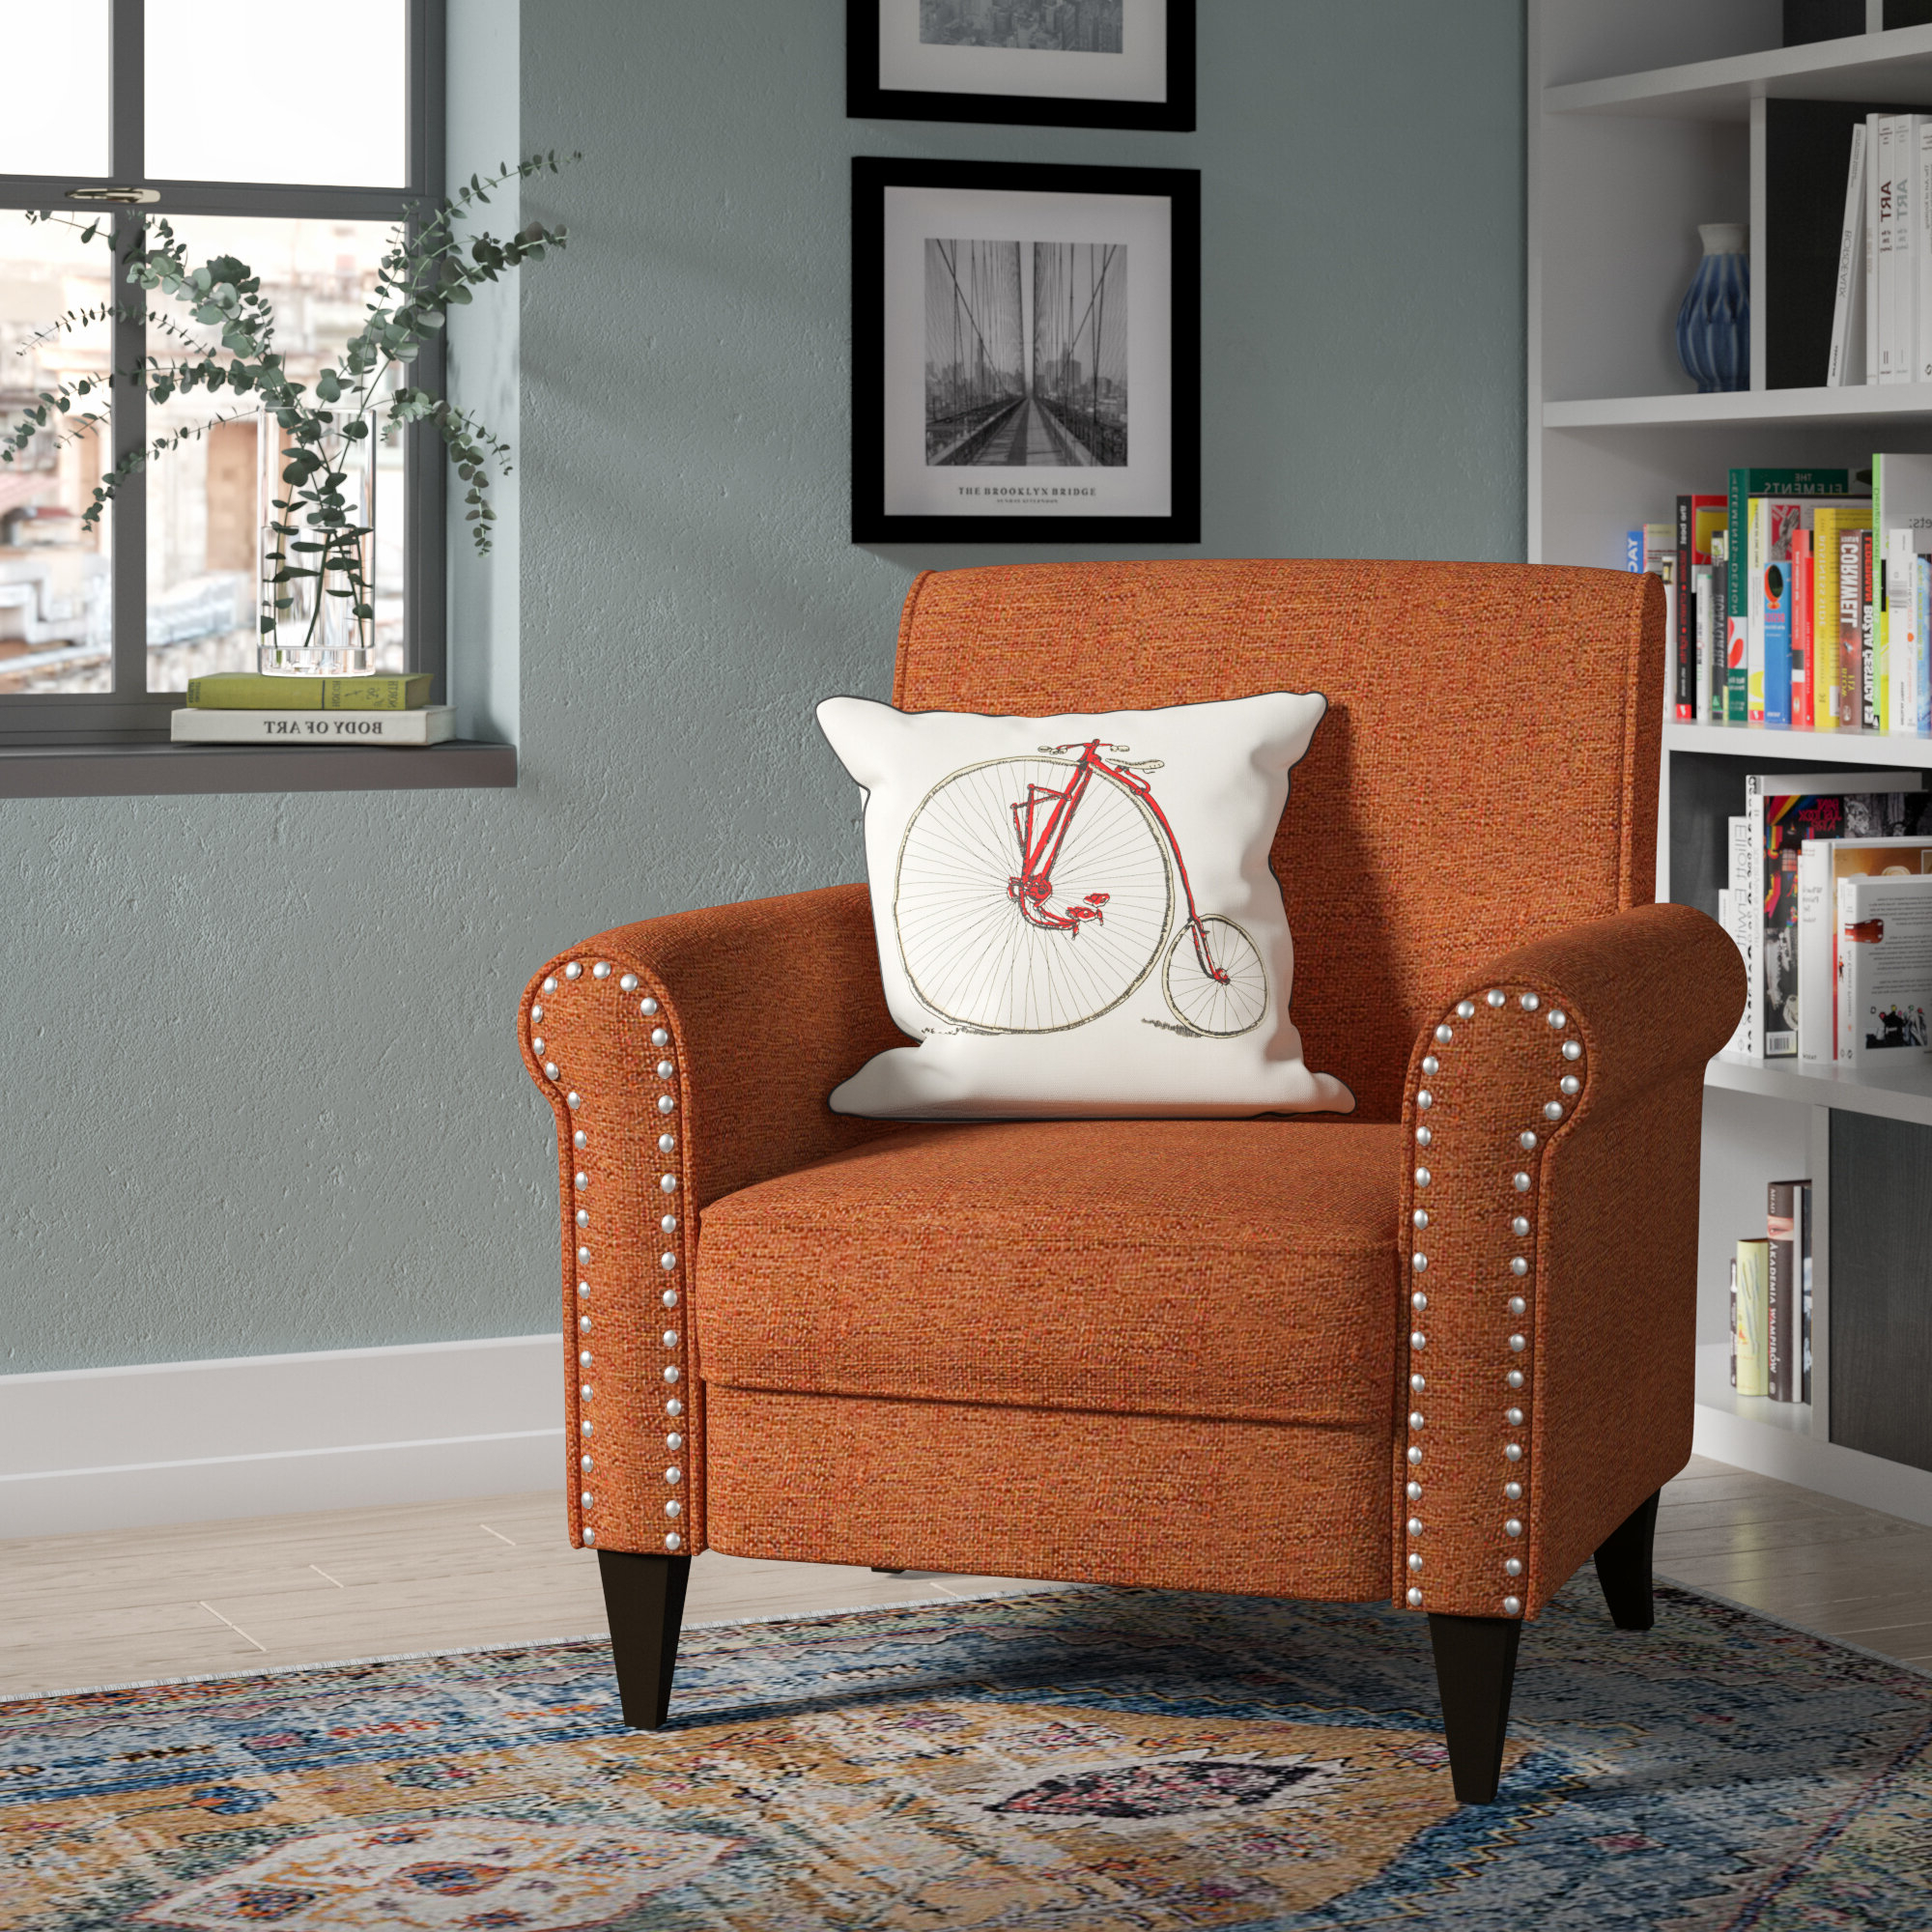 Wayfair Regarding Most Current Pitts Armchairs (View 5 of 20)